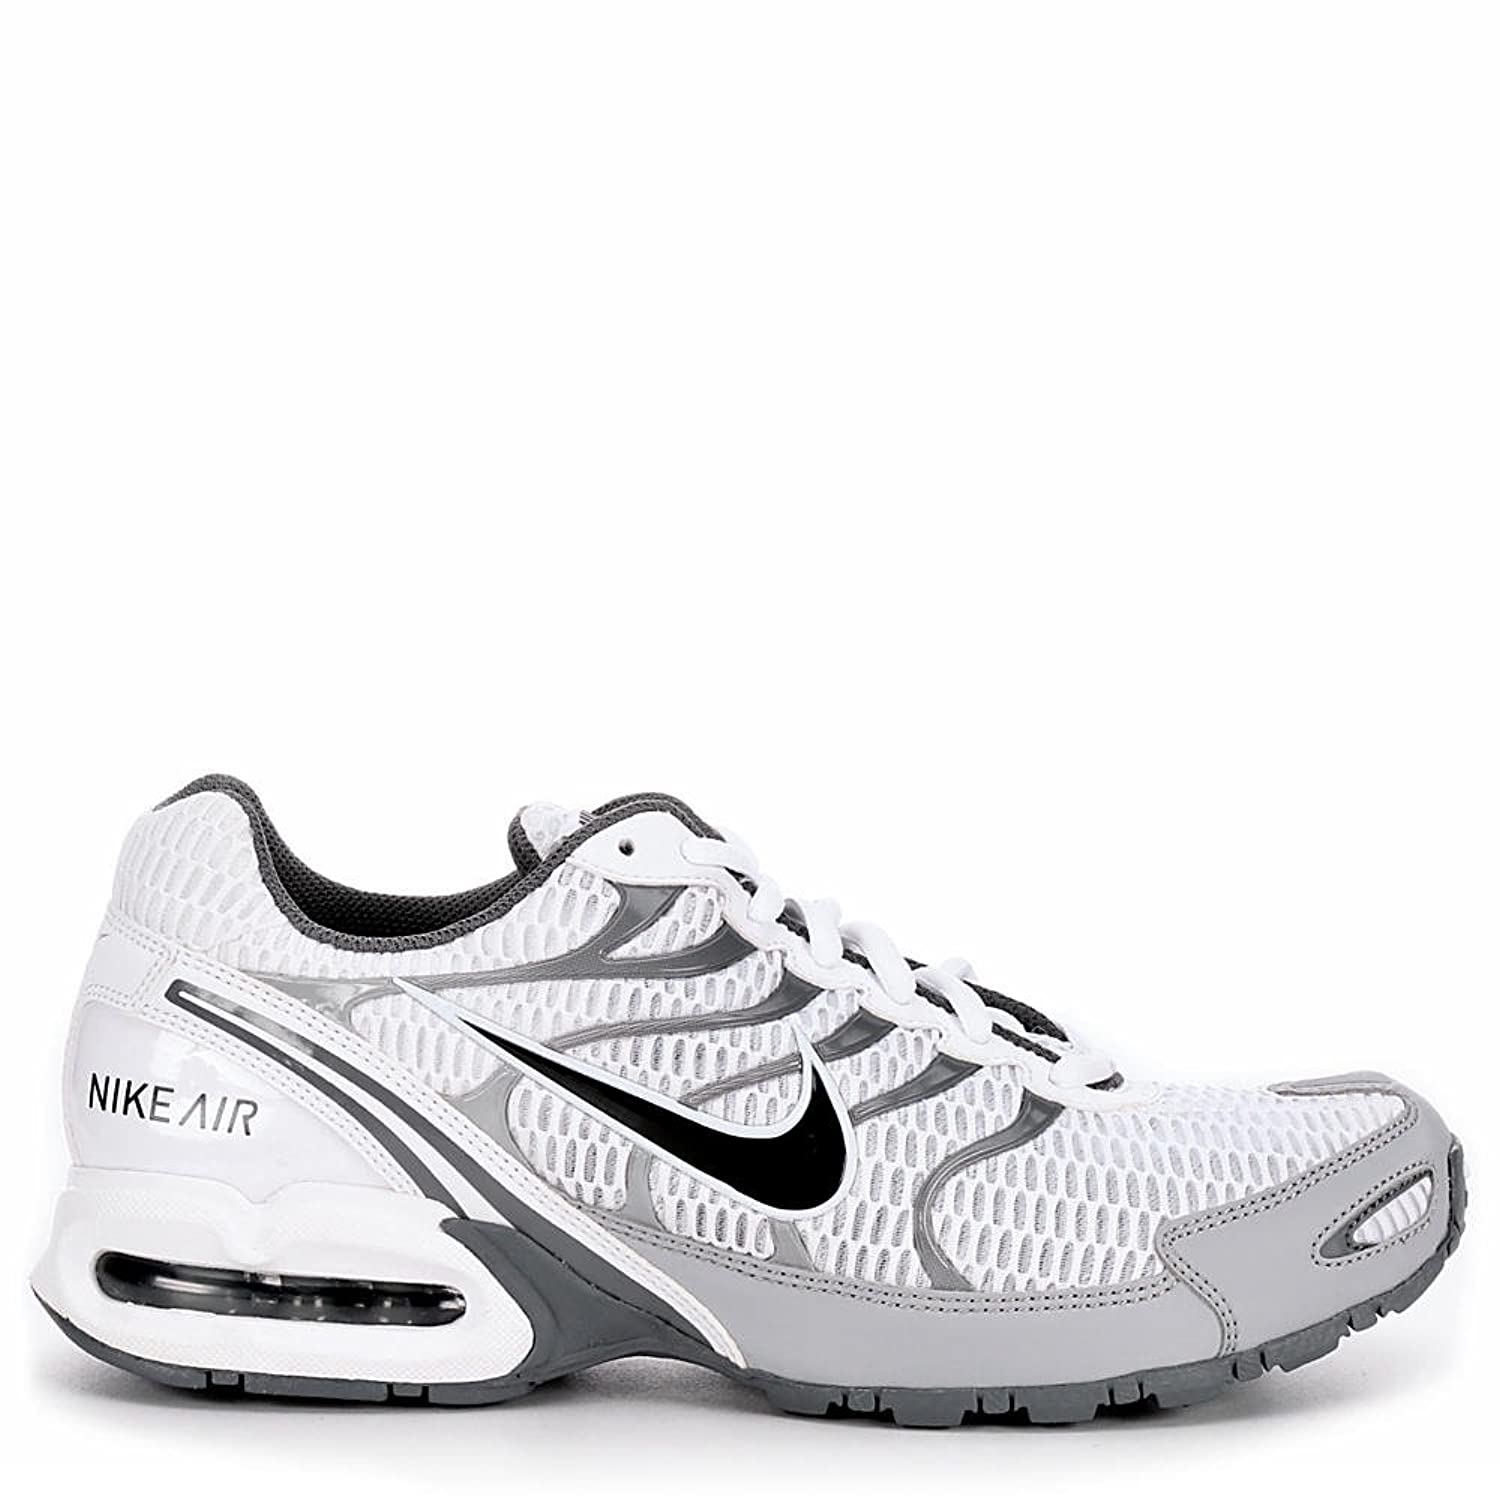 a7d7f18cf80a2 ... AnthraciteSilver Mens Nike Air Max Torch 4 Running Shoe Amazon.co.uk  Shoes ...